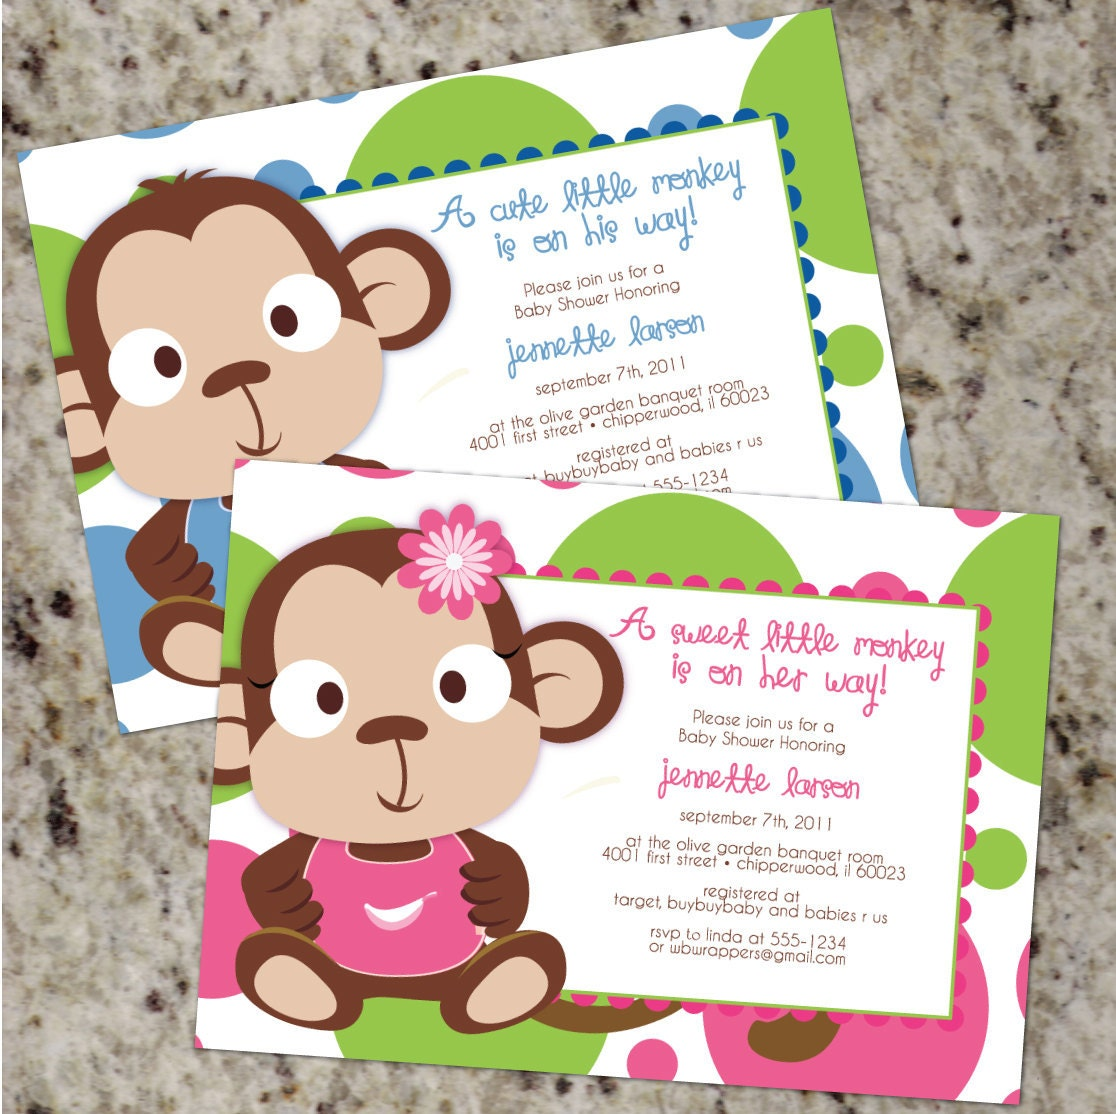 Couples Wedding Shower Invitations was beautiful invitation ideas